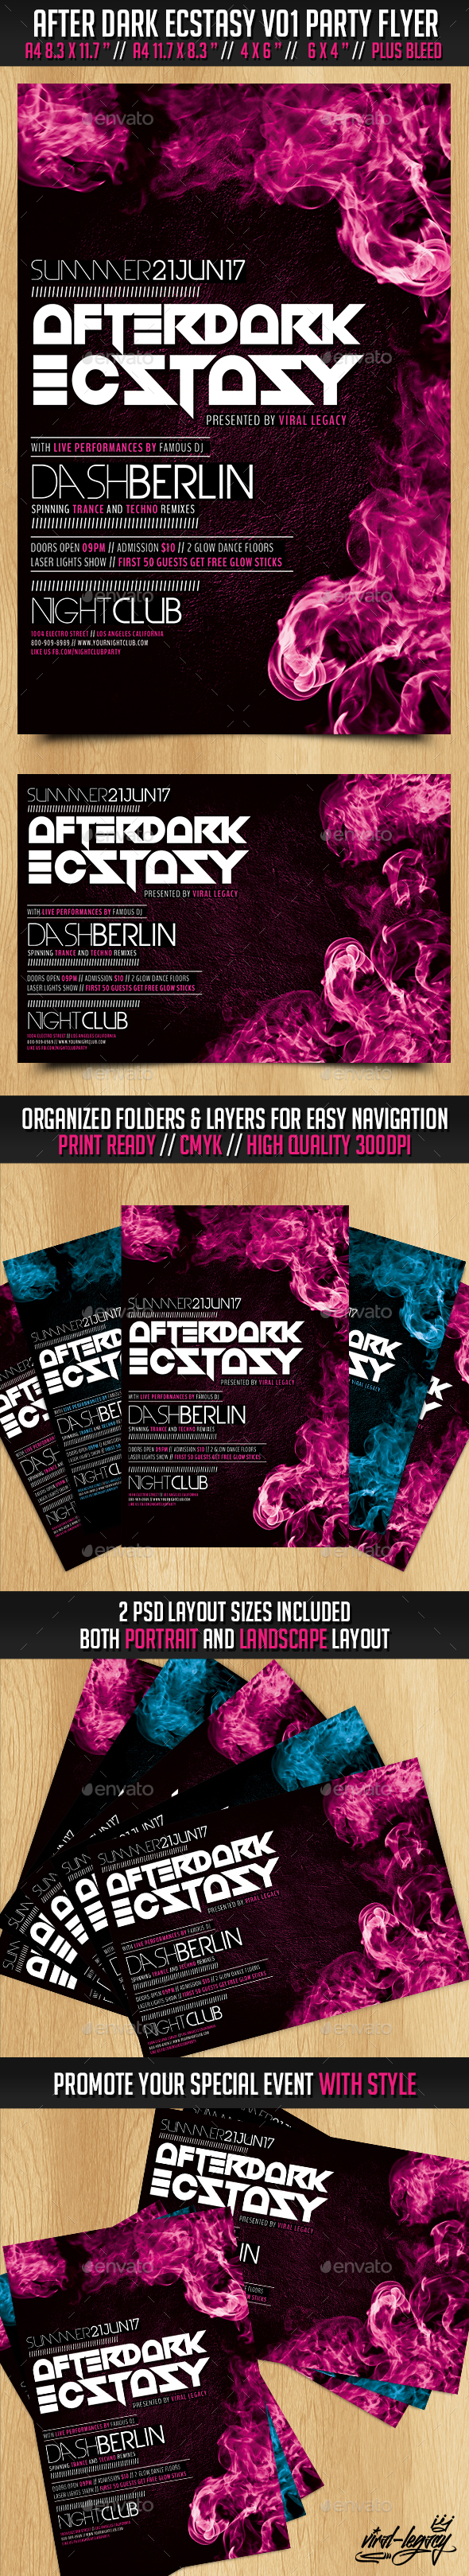 After Dark Ecstasy Volume 01 - Clubs & Parties Events